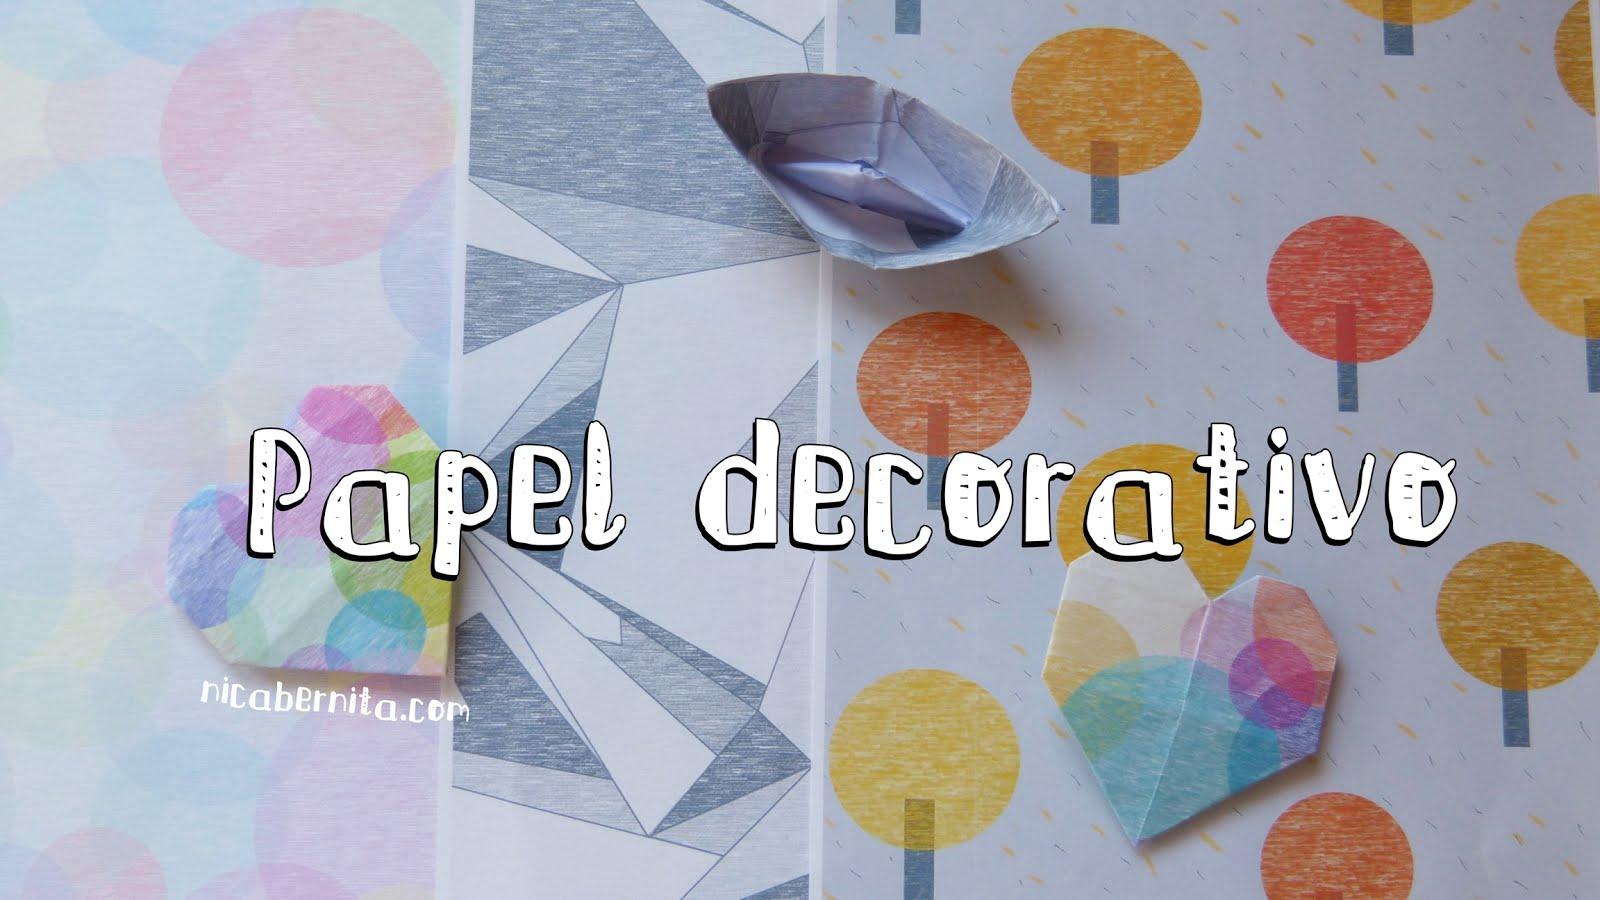 CREA TU PROPIO PAPEL DECORATIVO CON PAINT ✂🎨 PAPEL DECORADO PARA ...